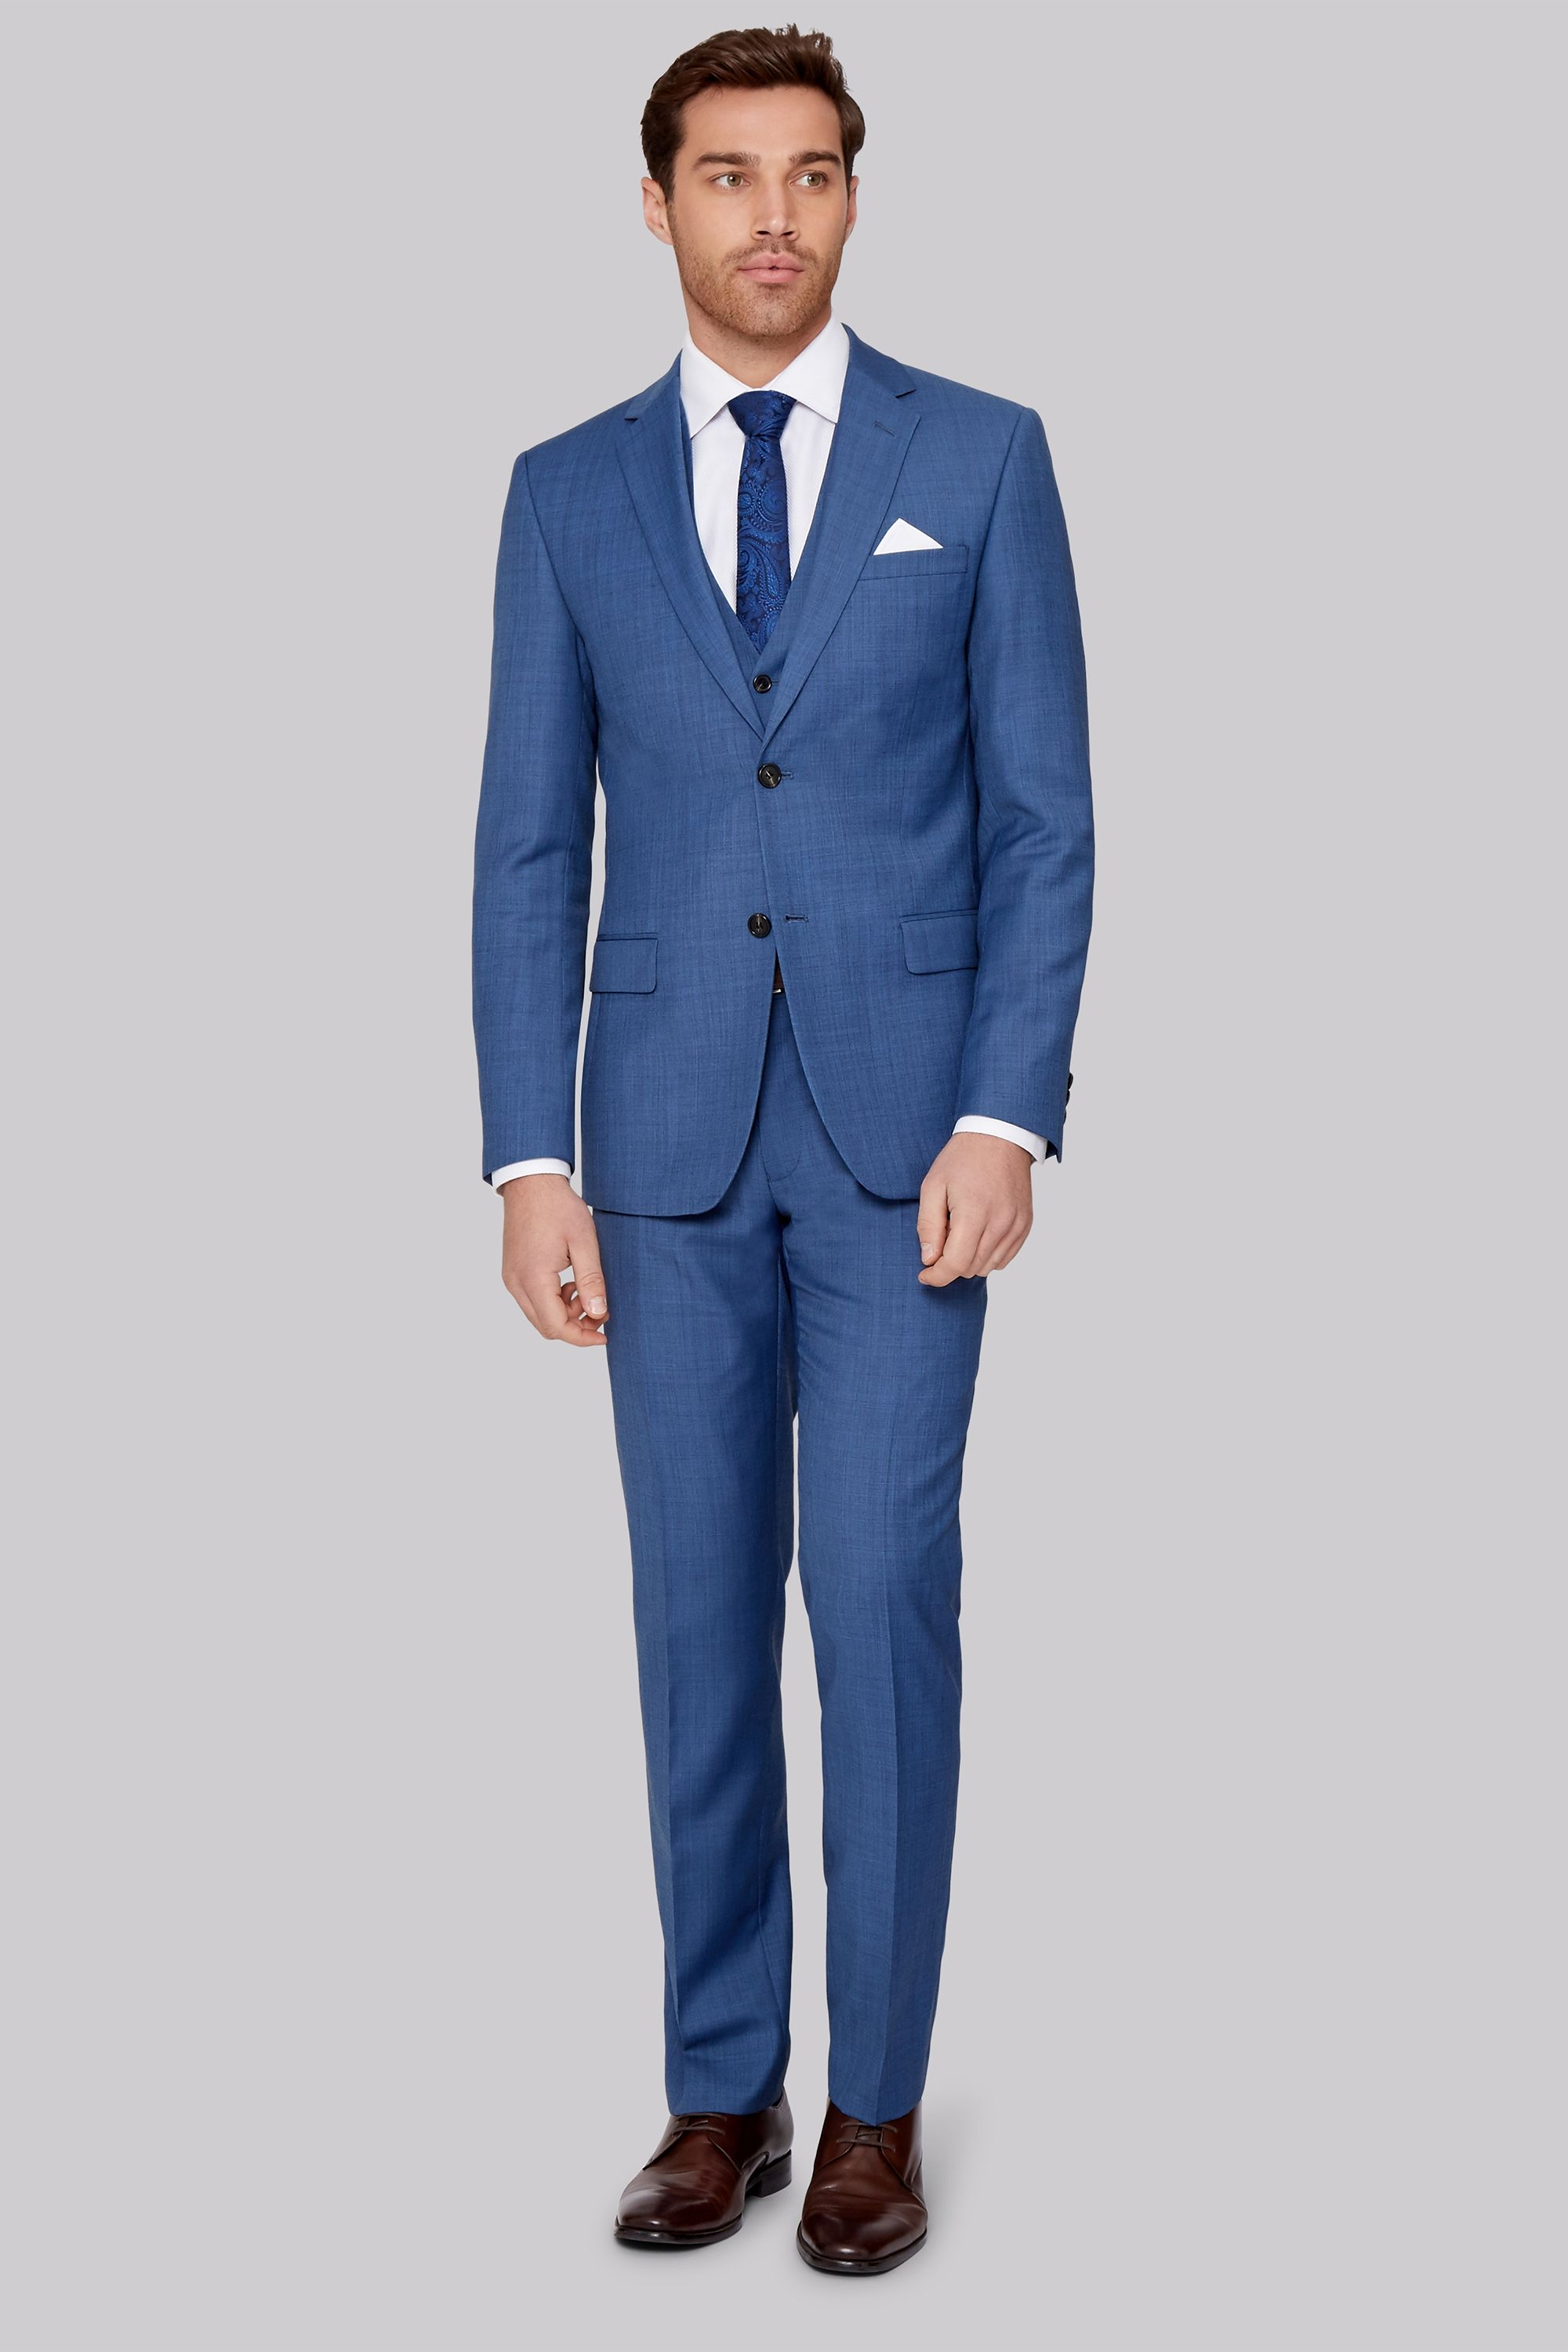 6f4684face066 Give your suiting collection a continental twist with this French blue  sharkskin suit Vibrant and beautifully tailored